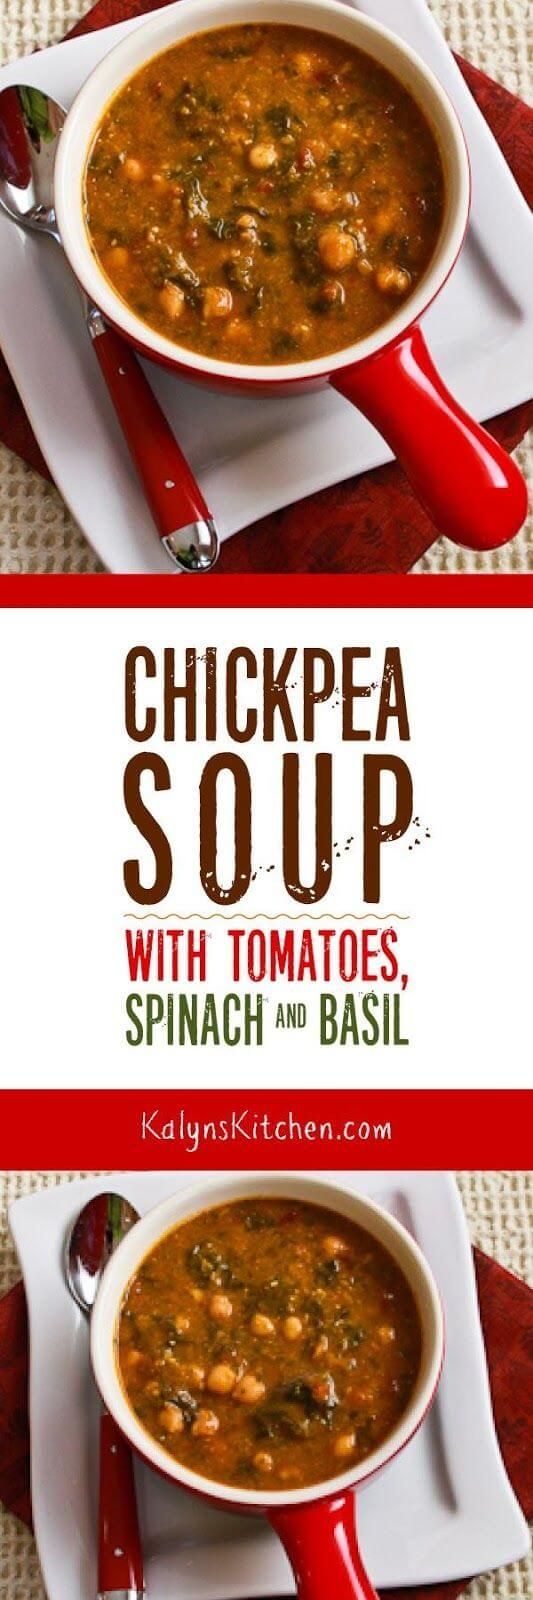 nice Chickpea (Garbanzo Bean) Soup with Spinach, Tomatoes, and Basil